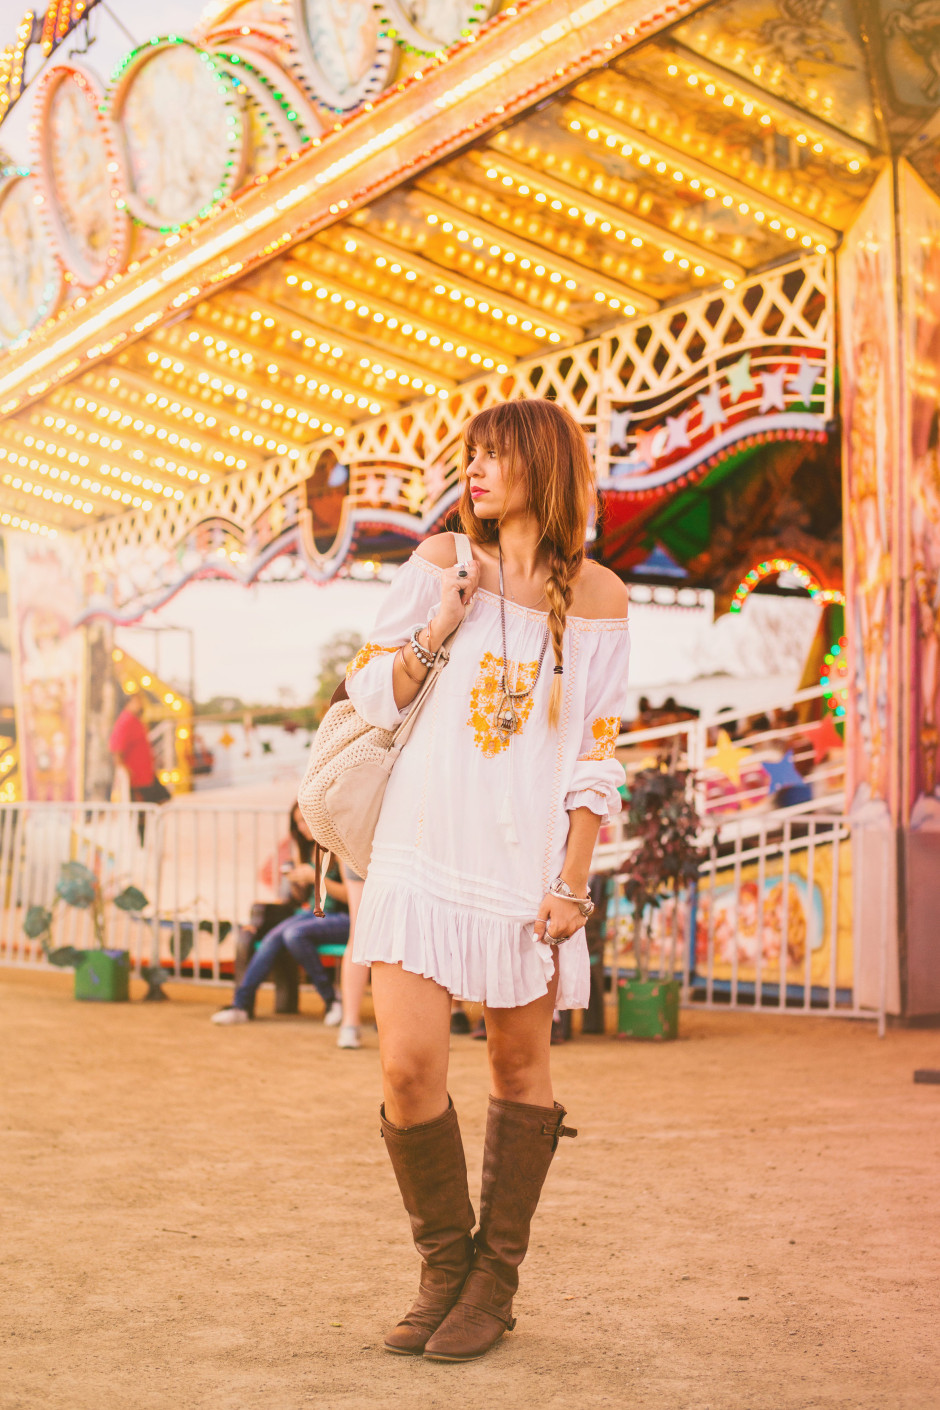 state fair, State Fair Outfits, What to wear to the State Fair, State Fair Fashion, dress